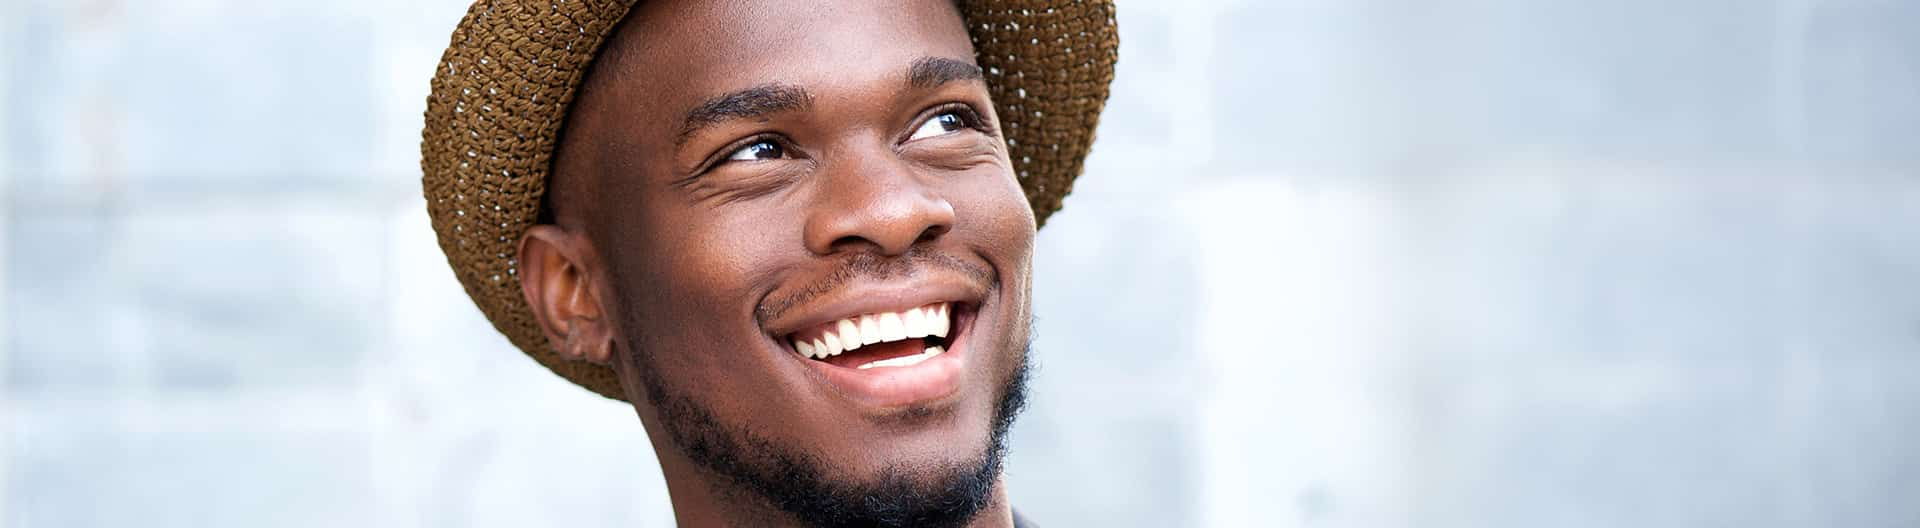 African American Smiling